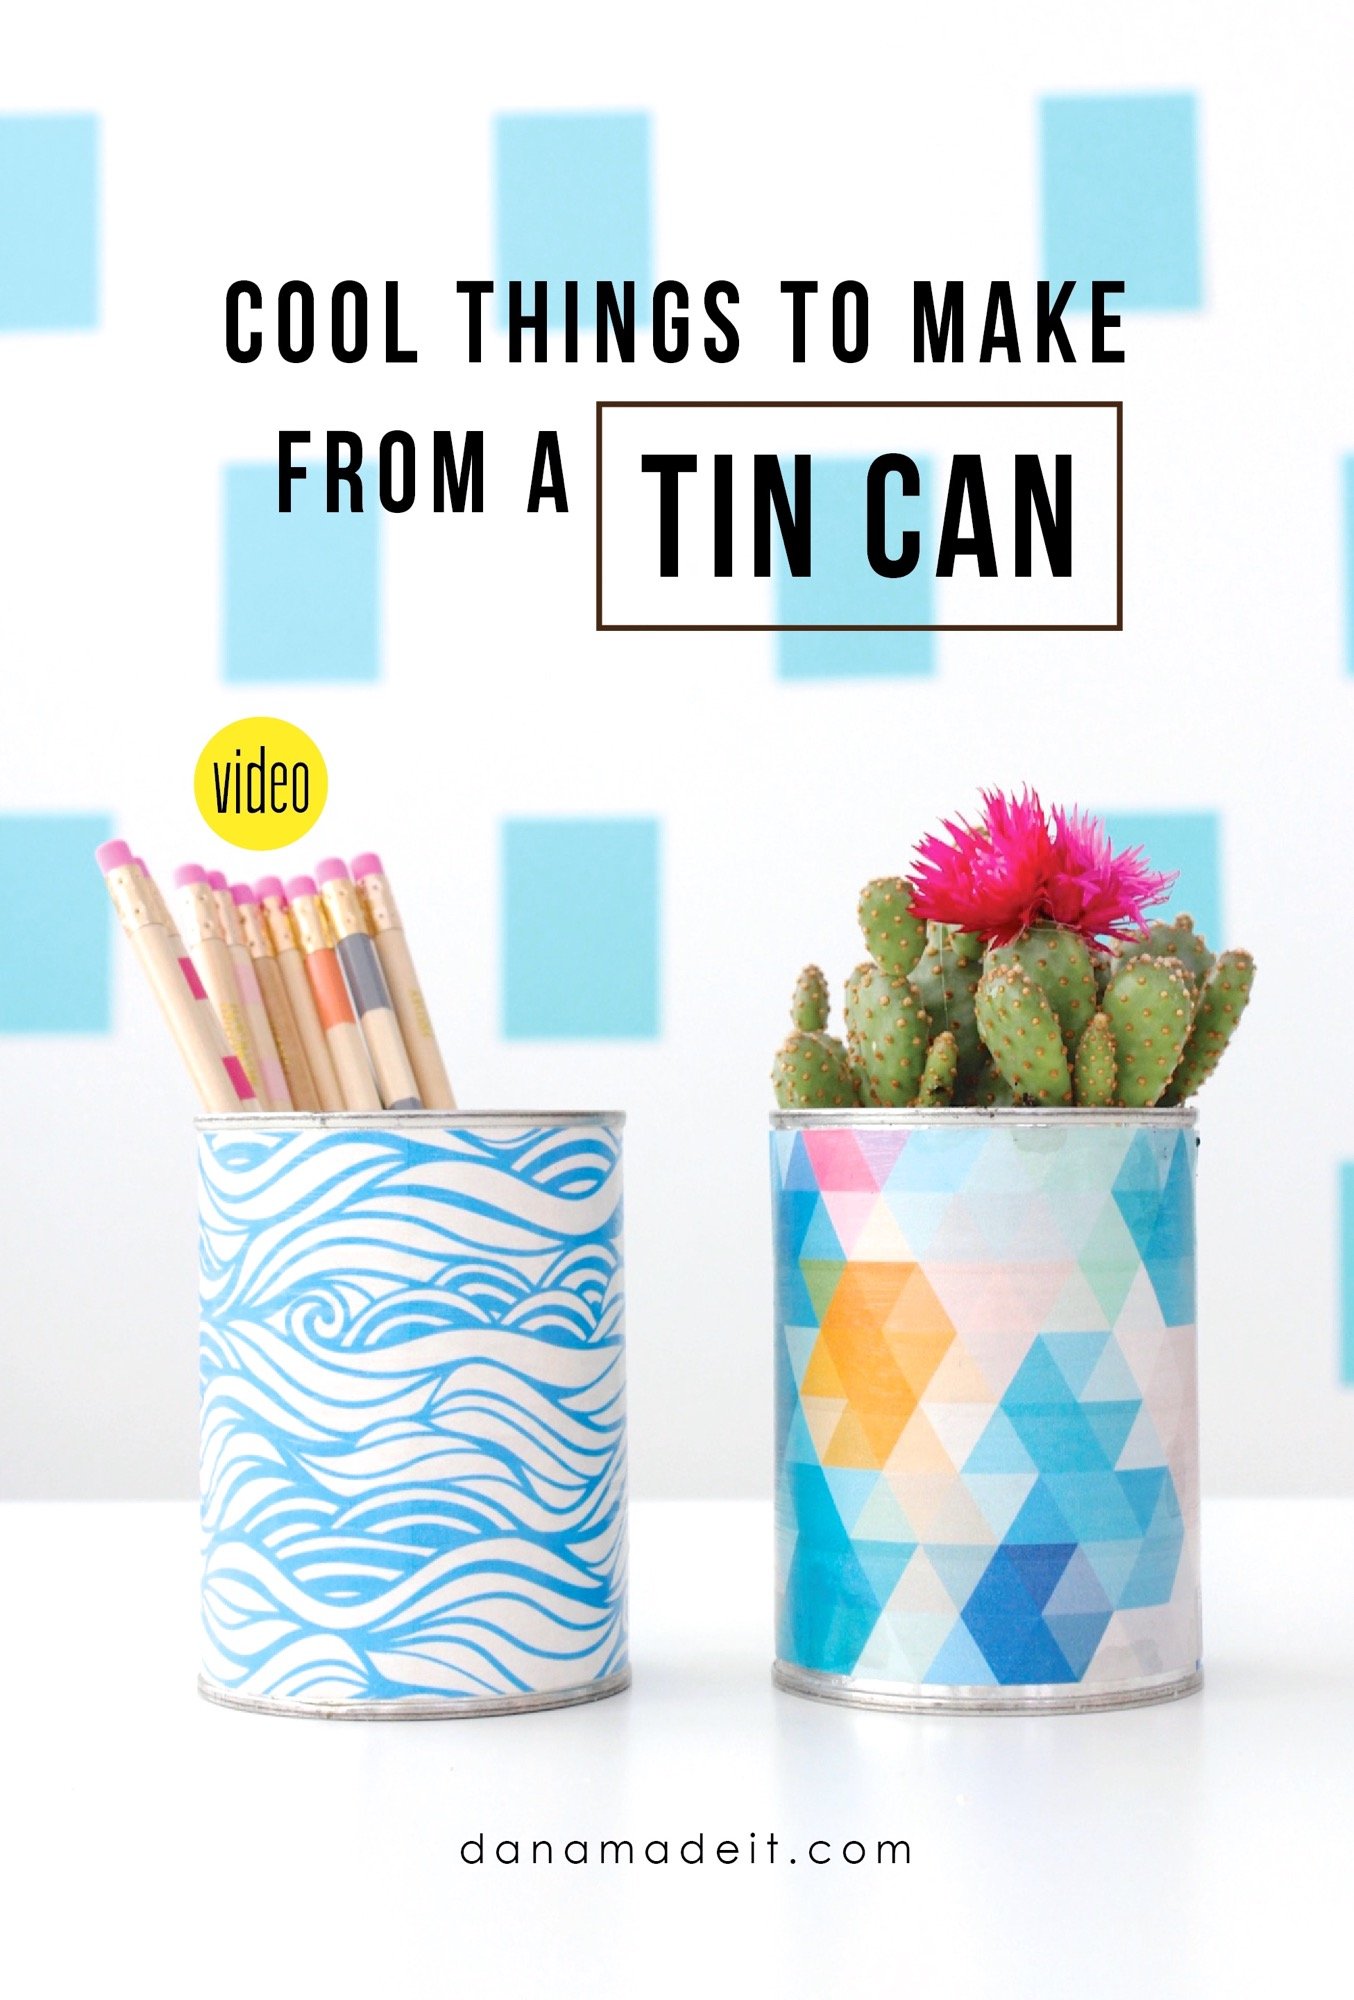 new video cool things to make with a tin can made